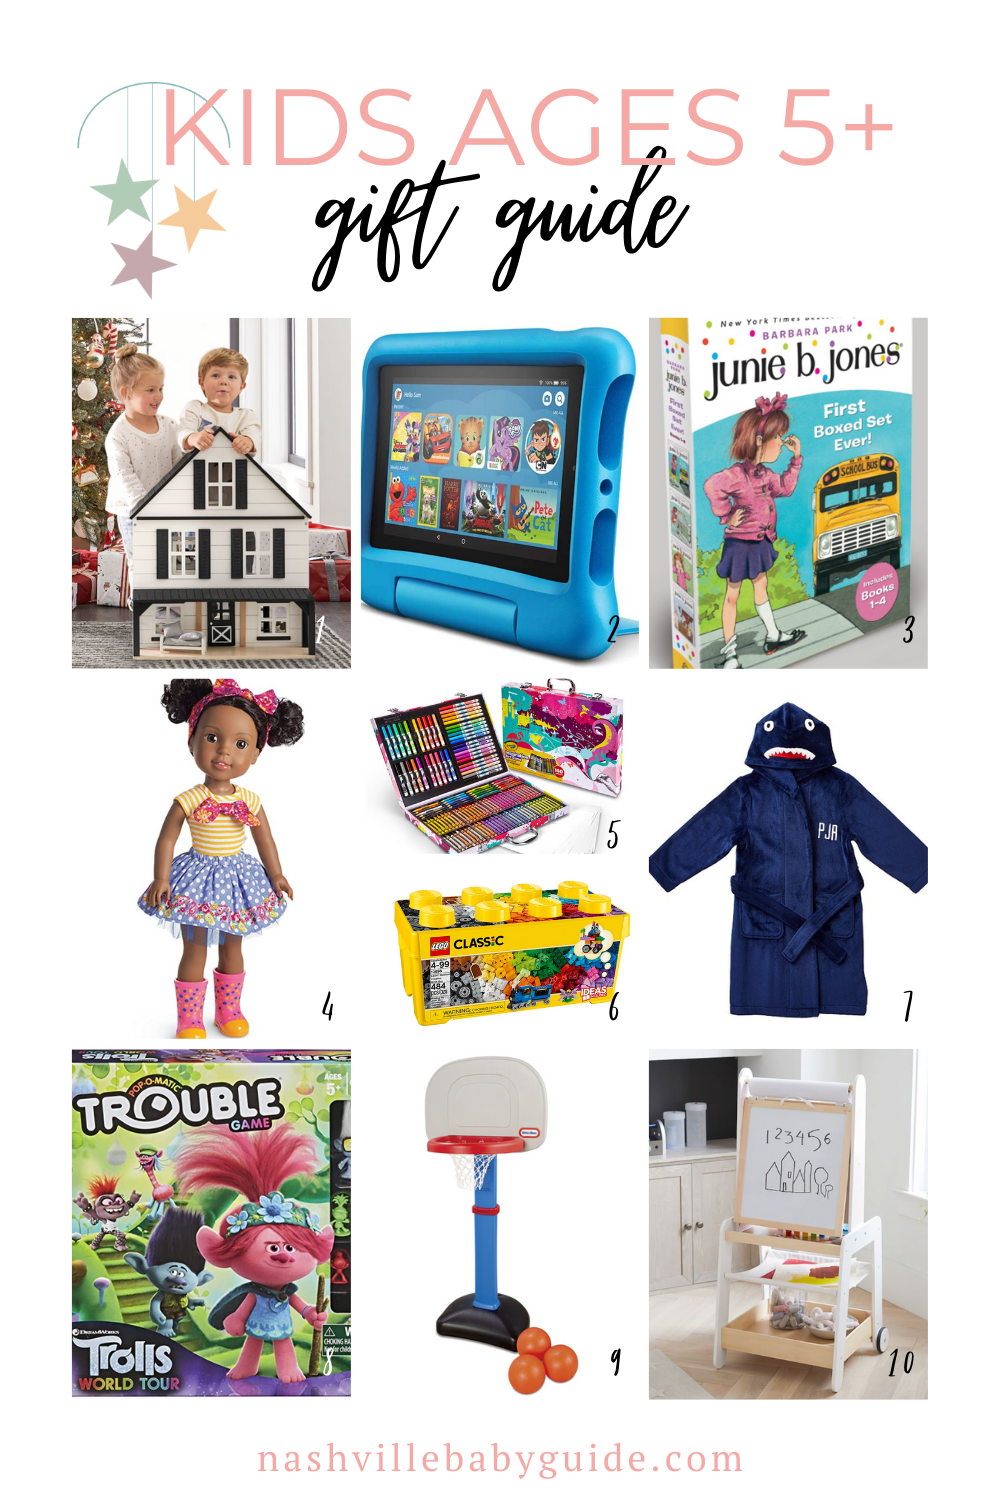 Kids Ages 5+ Gift Guide for the Holidays featured on Nashville Baby Guide